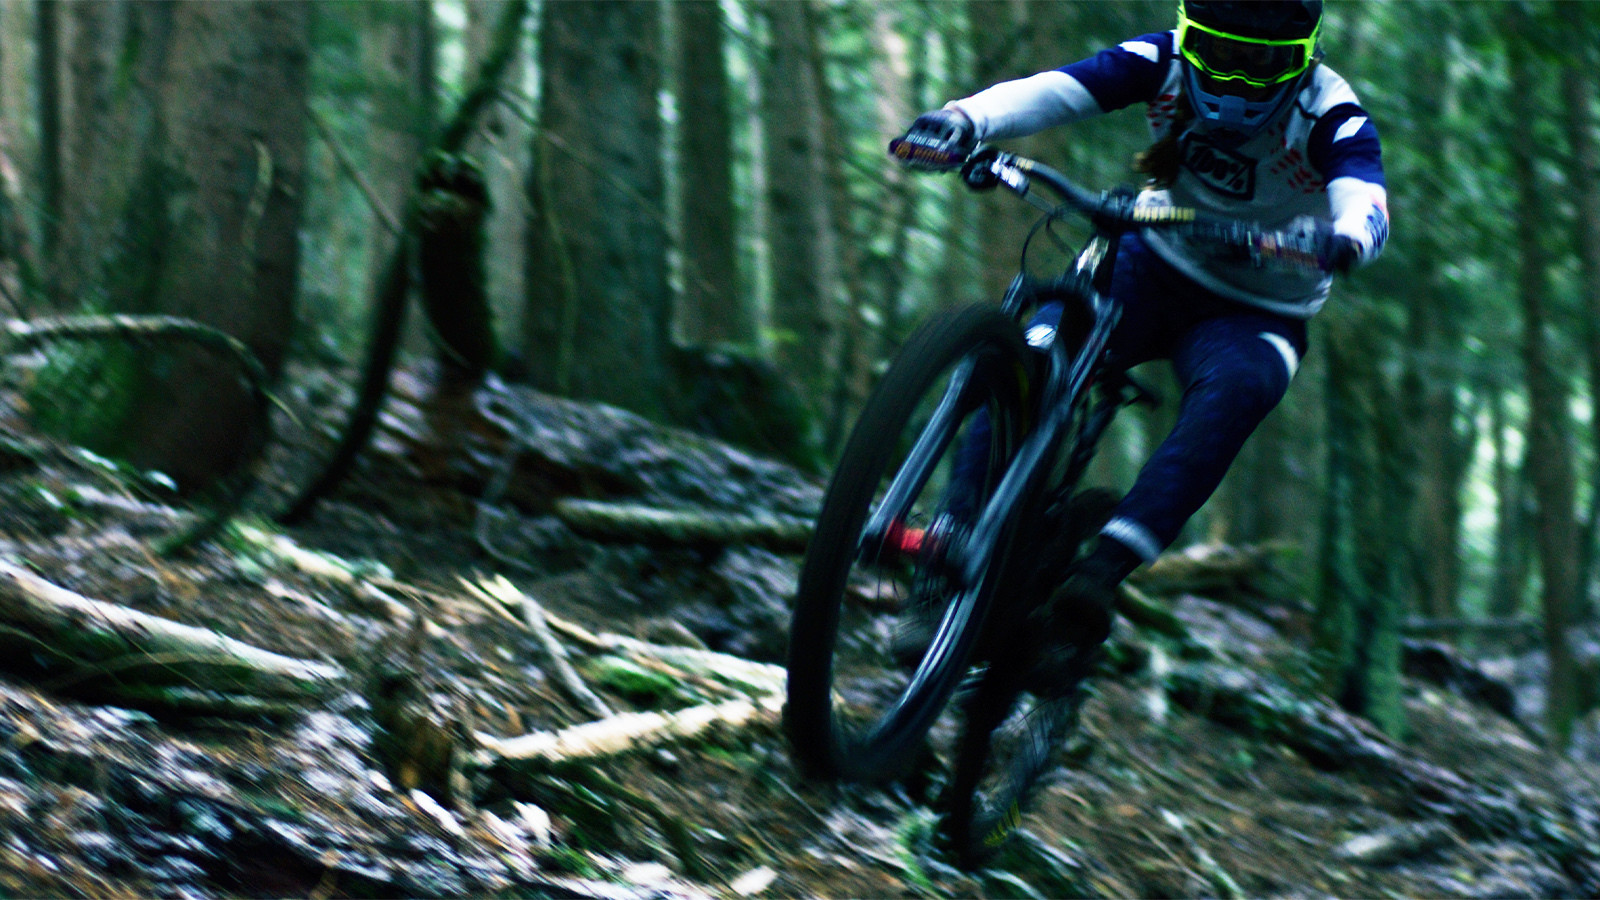 There's No Sound Quite Like it - Miranda Miller Rips a Cold, Damp Cypress Mt